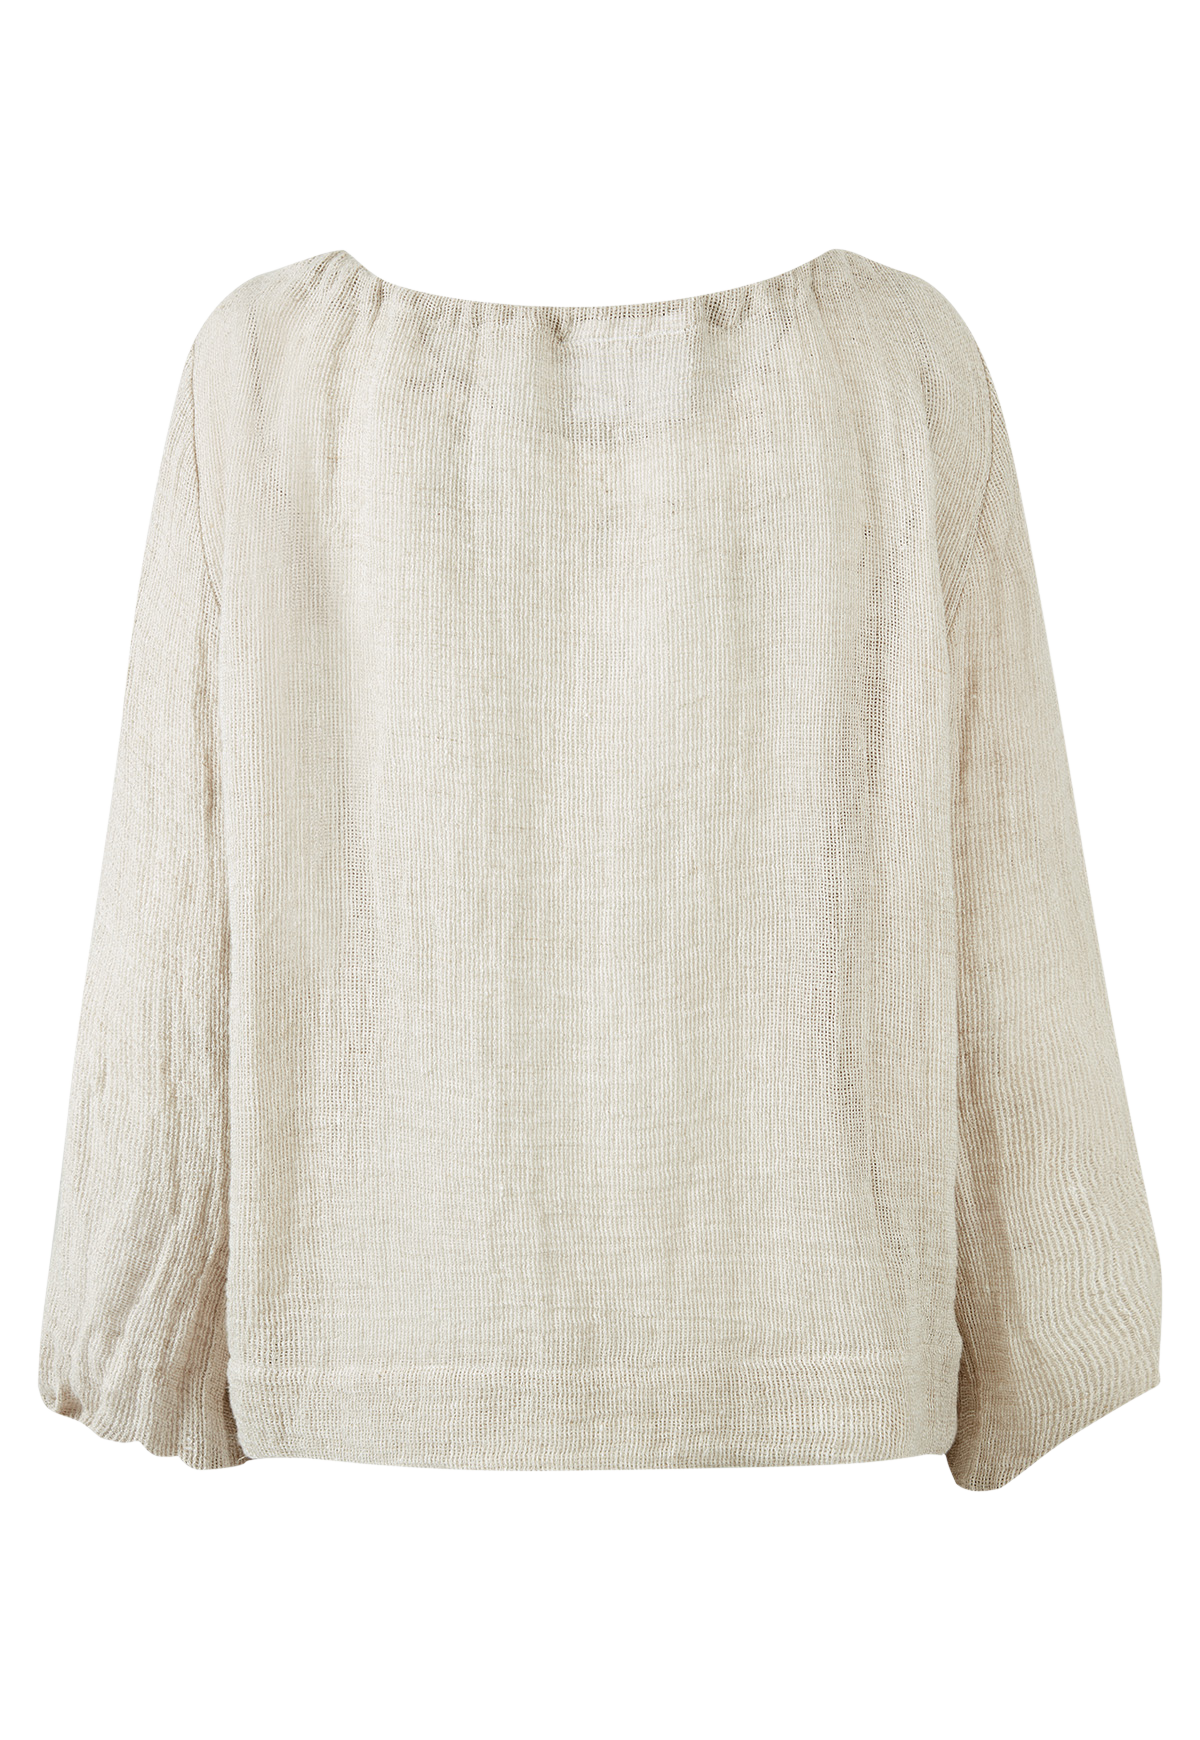 OATMEAL CHIOS GAUZE PEASANT TOP